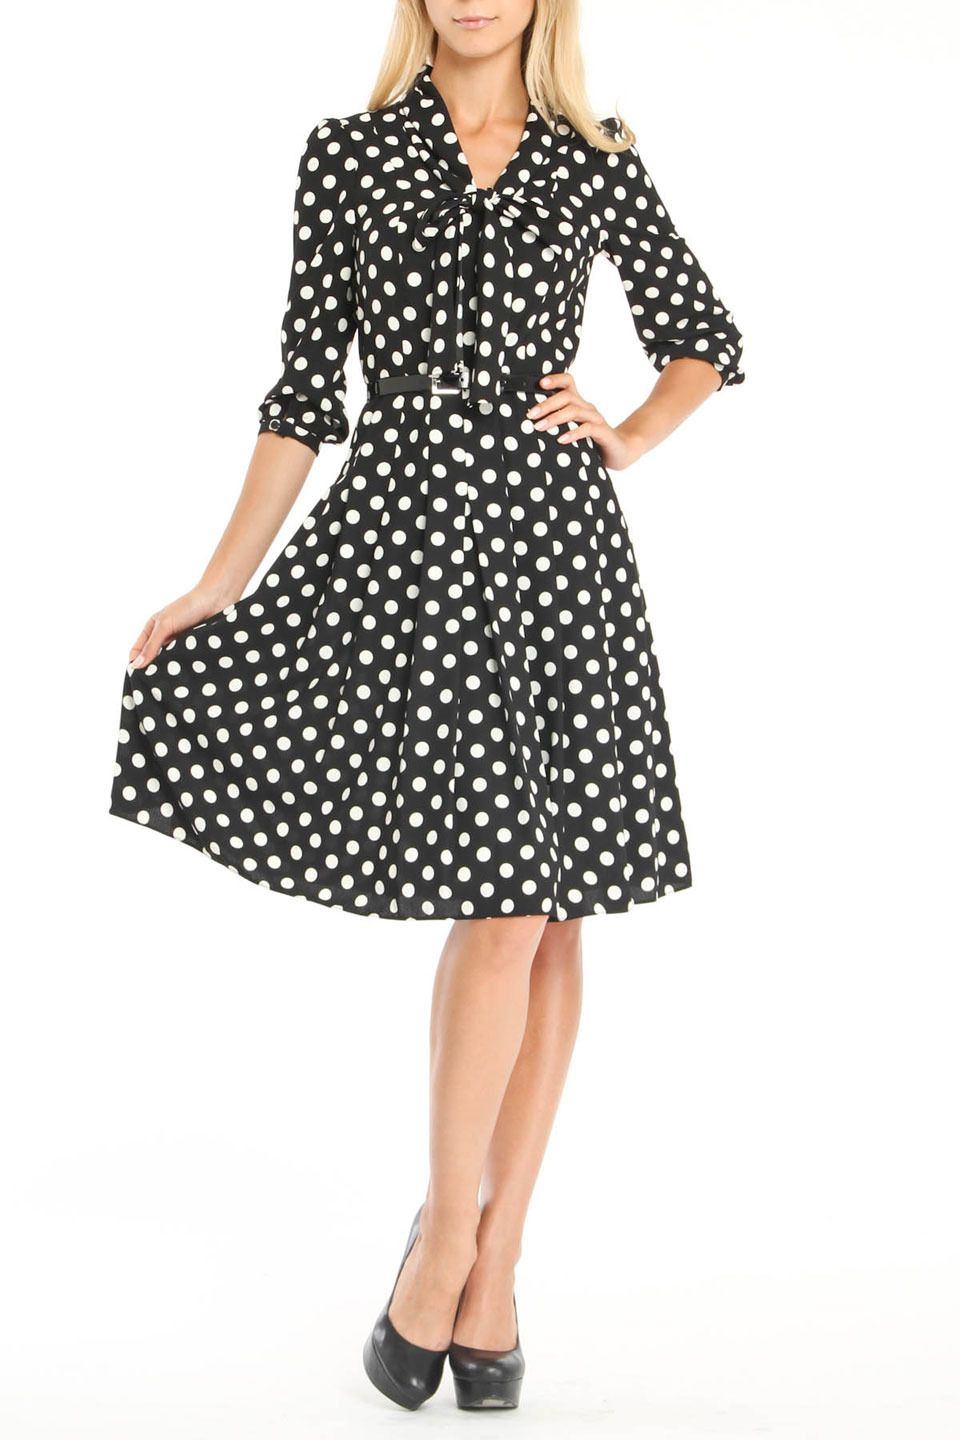 Crazy for polka dots.